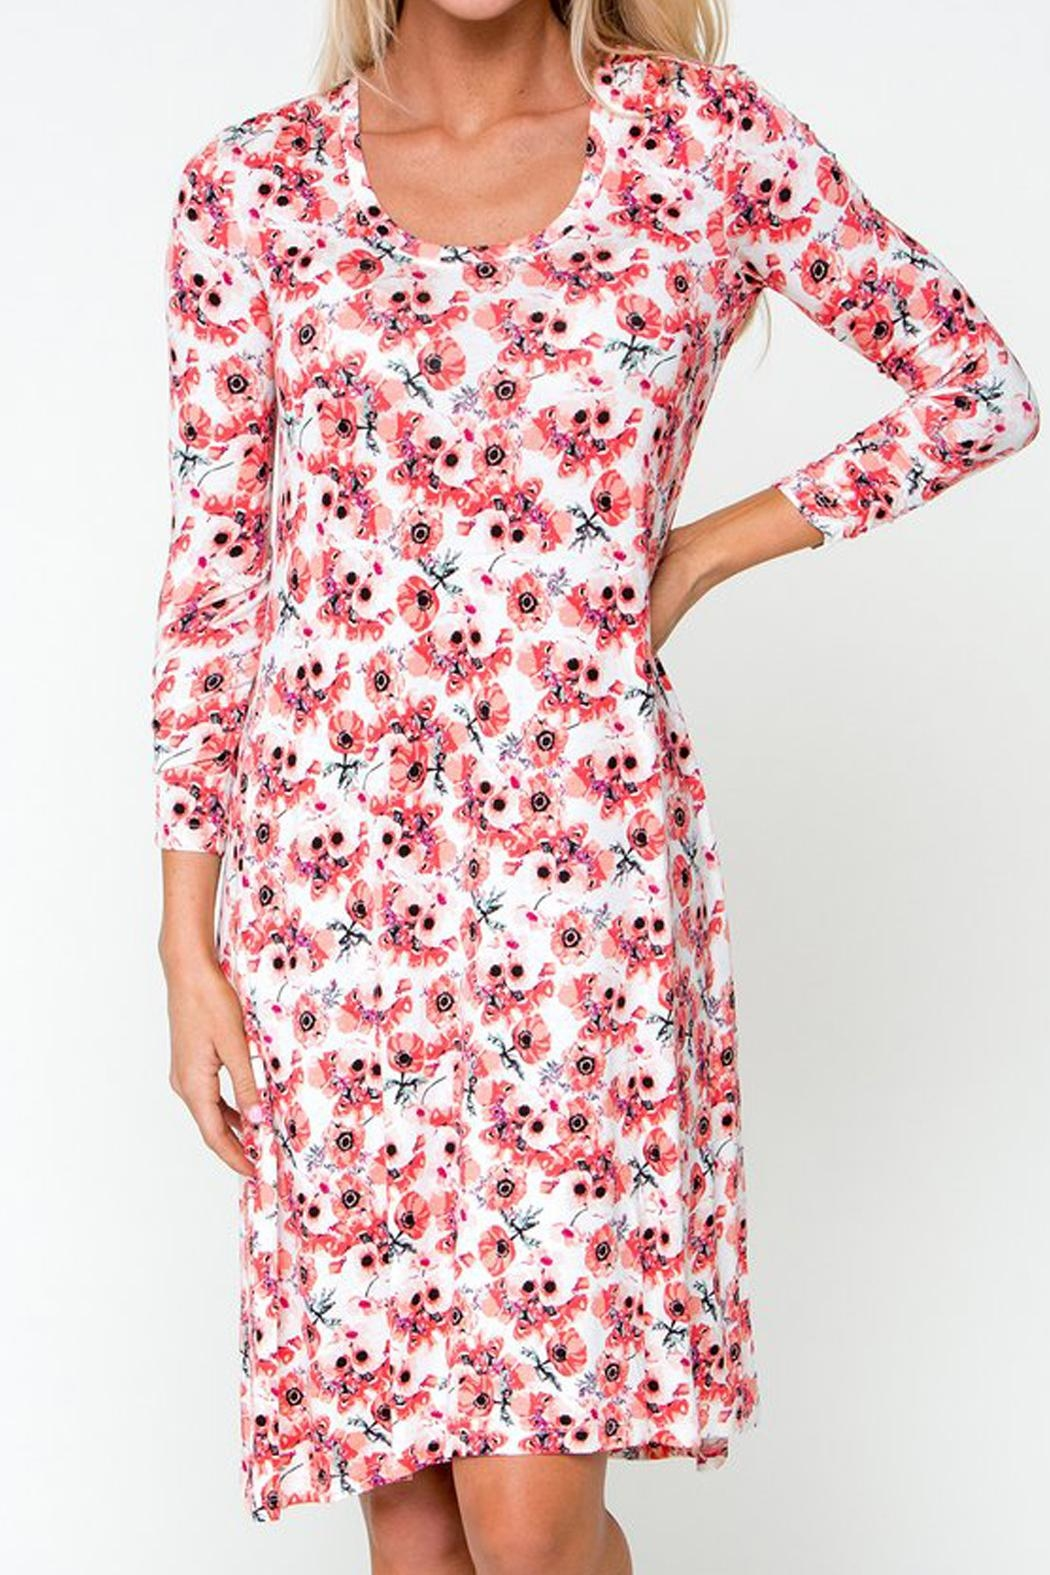 Downeast Basics Everyday Floral Dress - Main Image